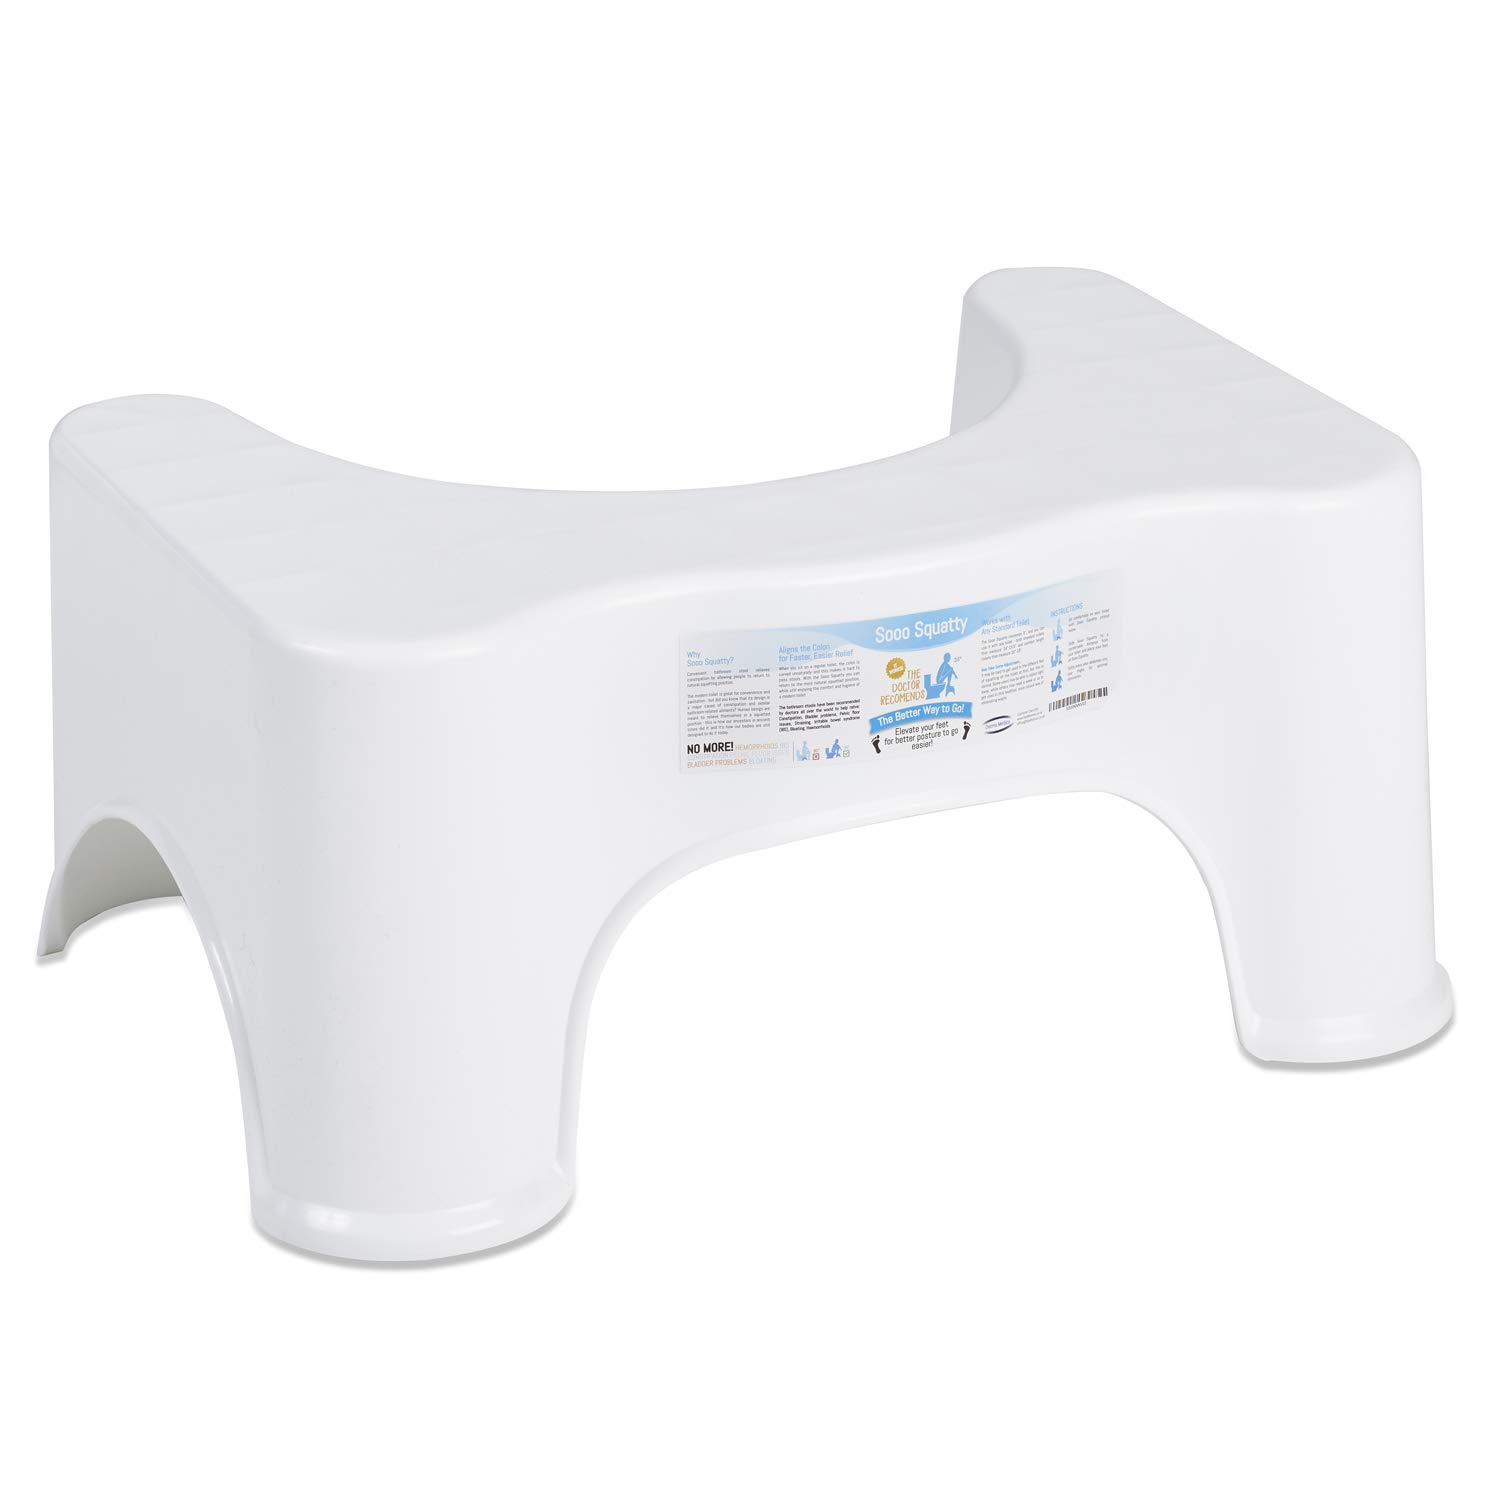 Awesome Derma Medico Squatting Toilet Stool 9 Inch Non Slip Bathroom Step Up Stool Relieves Constipation Bloating Aligns The Colon For Faster Easier Inzonedesignstudio Interior Chair Design Inzonedesignstudiocom